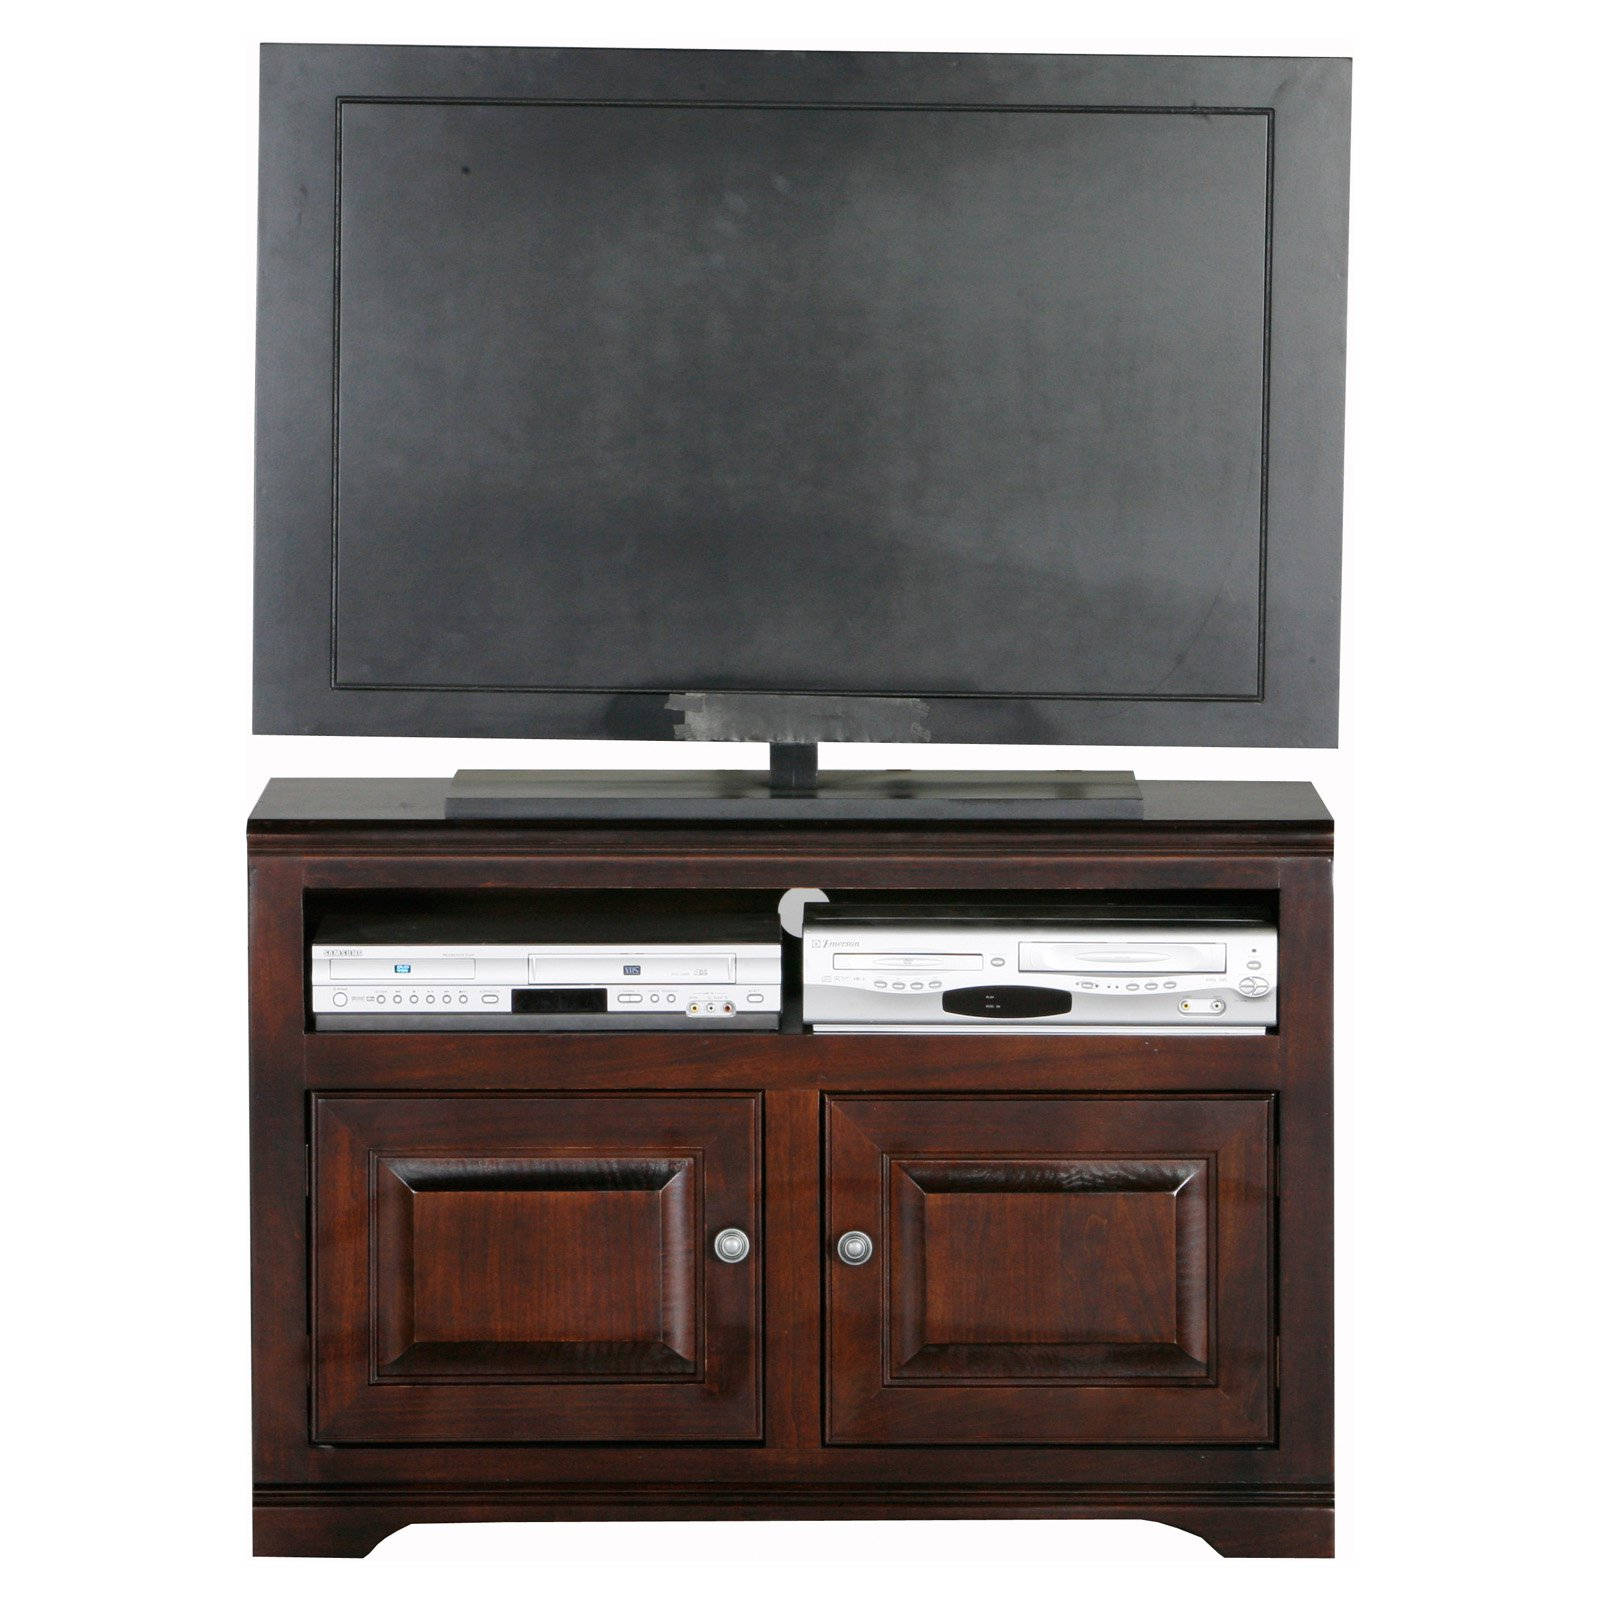 Eagle Furniture Savannah 39 in. Wood Panel TV Stand